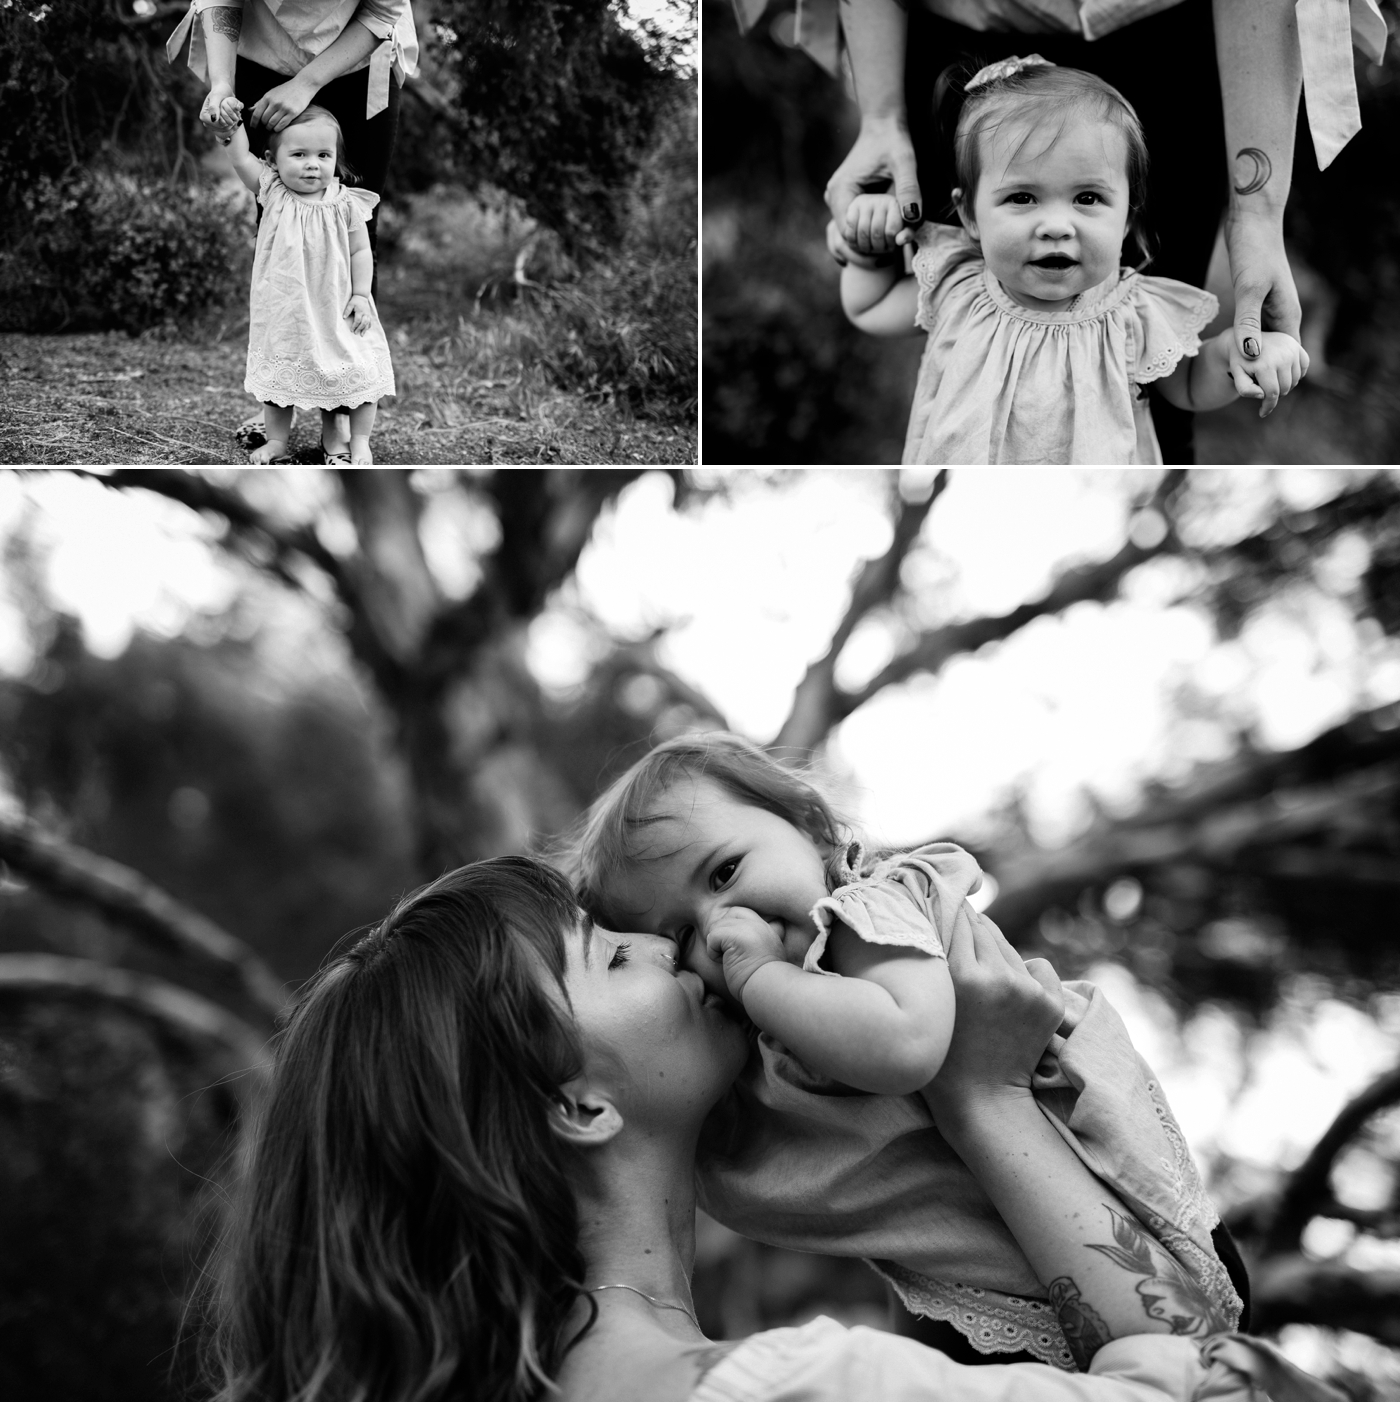 Caitlin and Billie - Natural family photographer in Adelaide - Candid and beautiful family photography in Adelaide - www.katherineschultzphotography.com 2